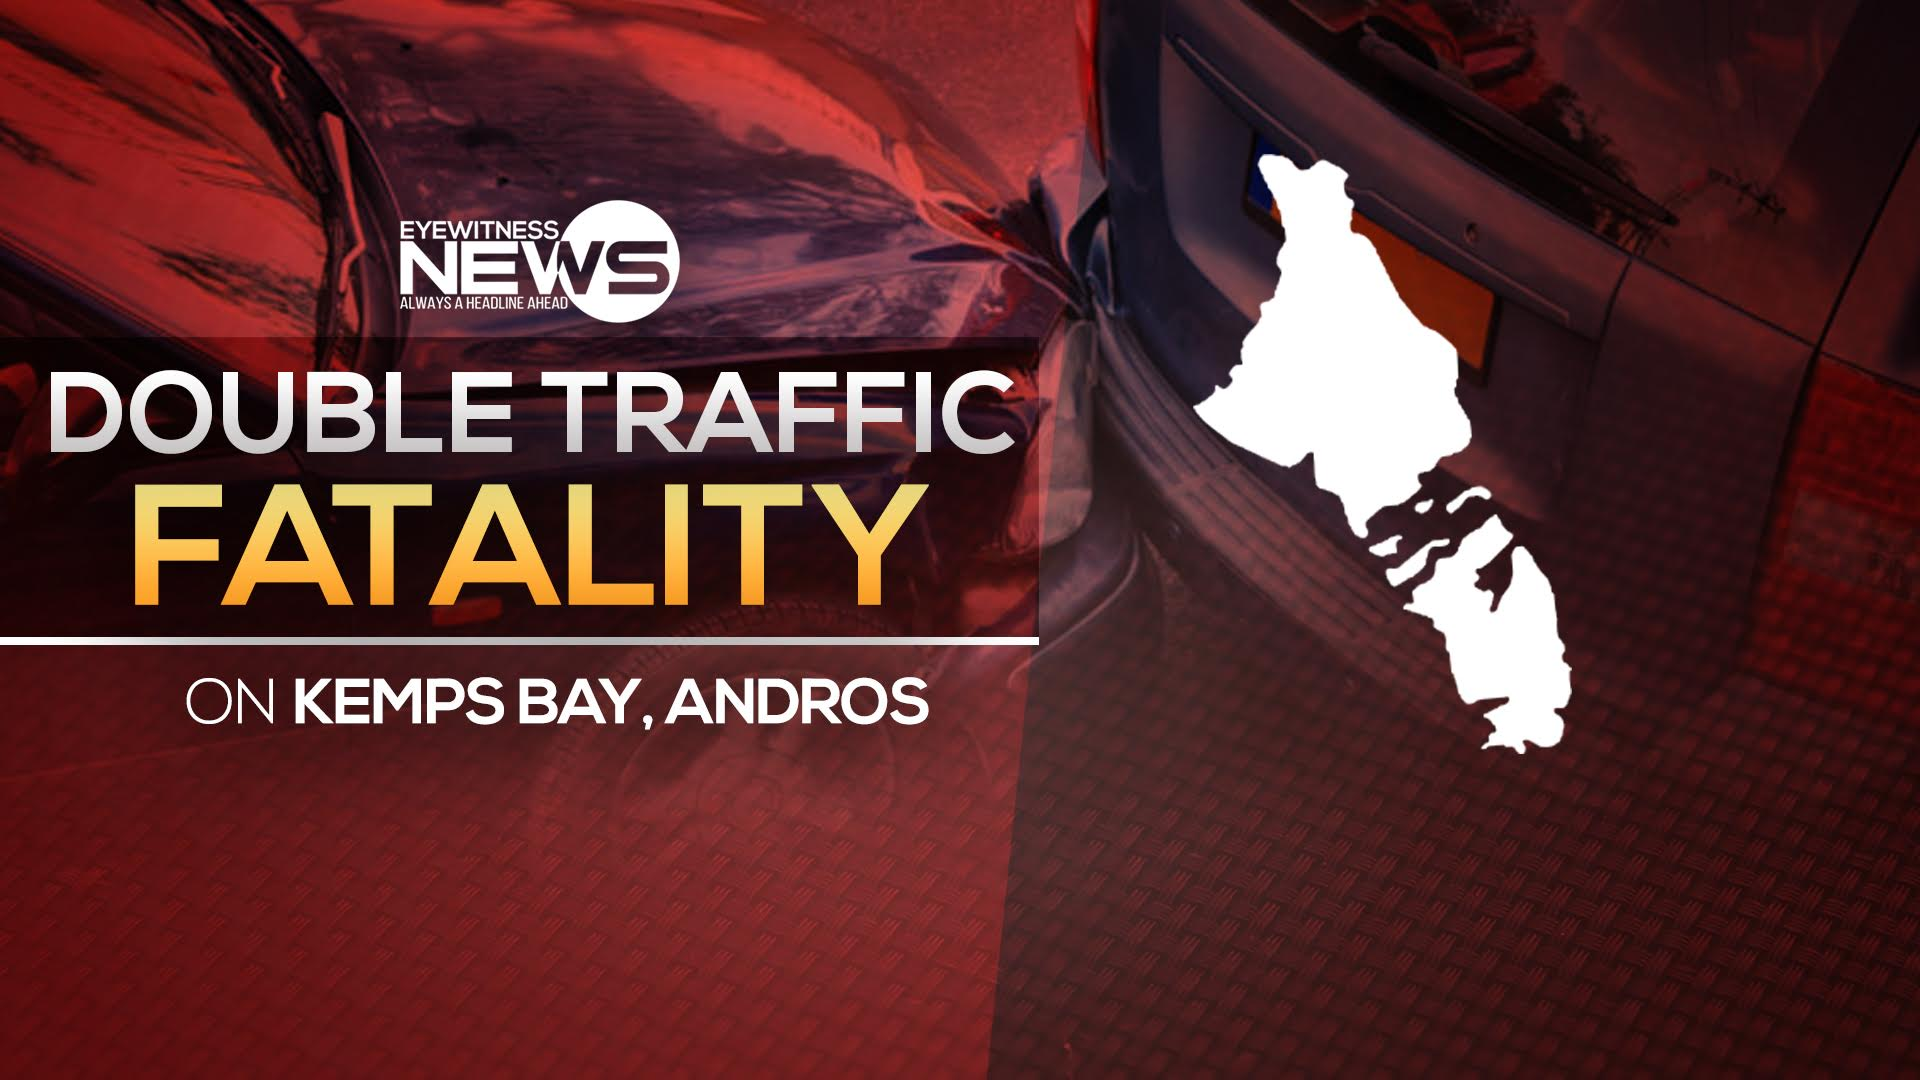 Double traffic fatality in Kemp's Bay, Andros